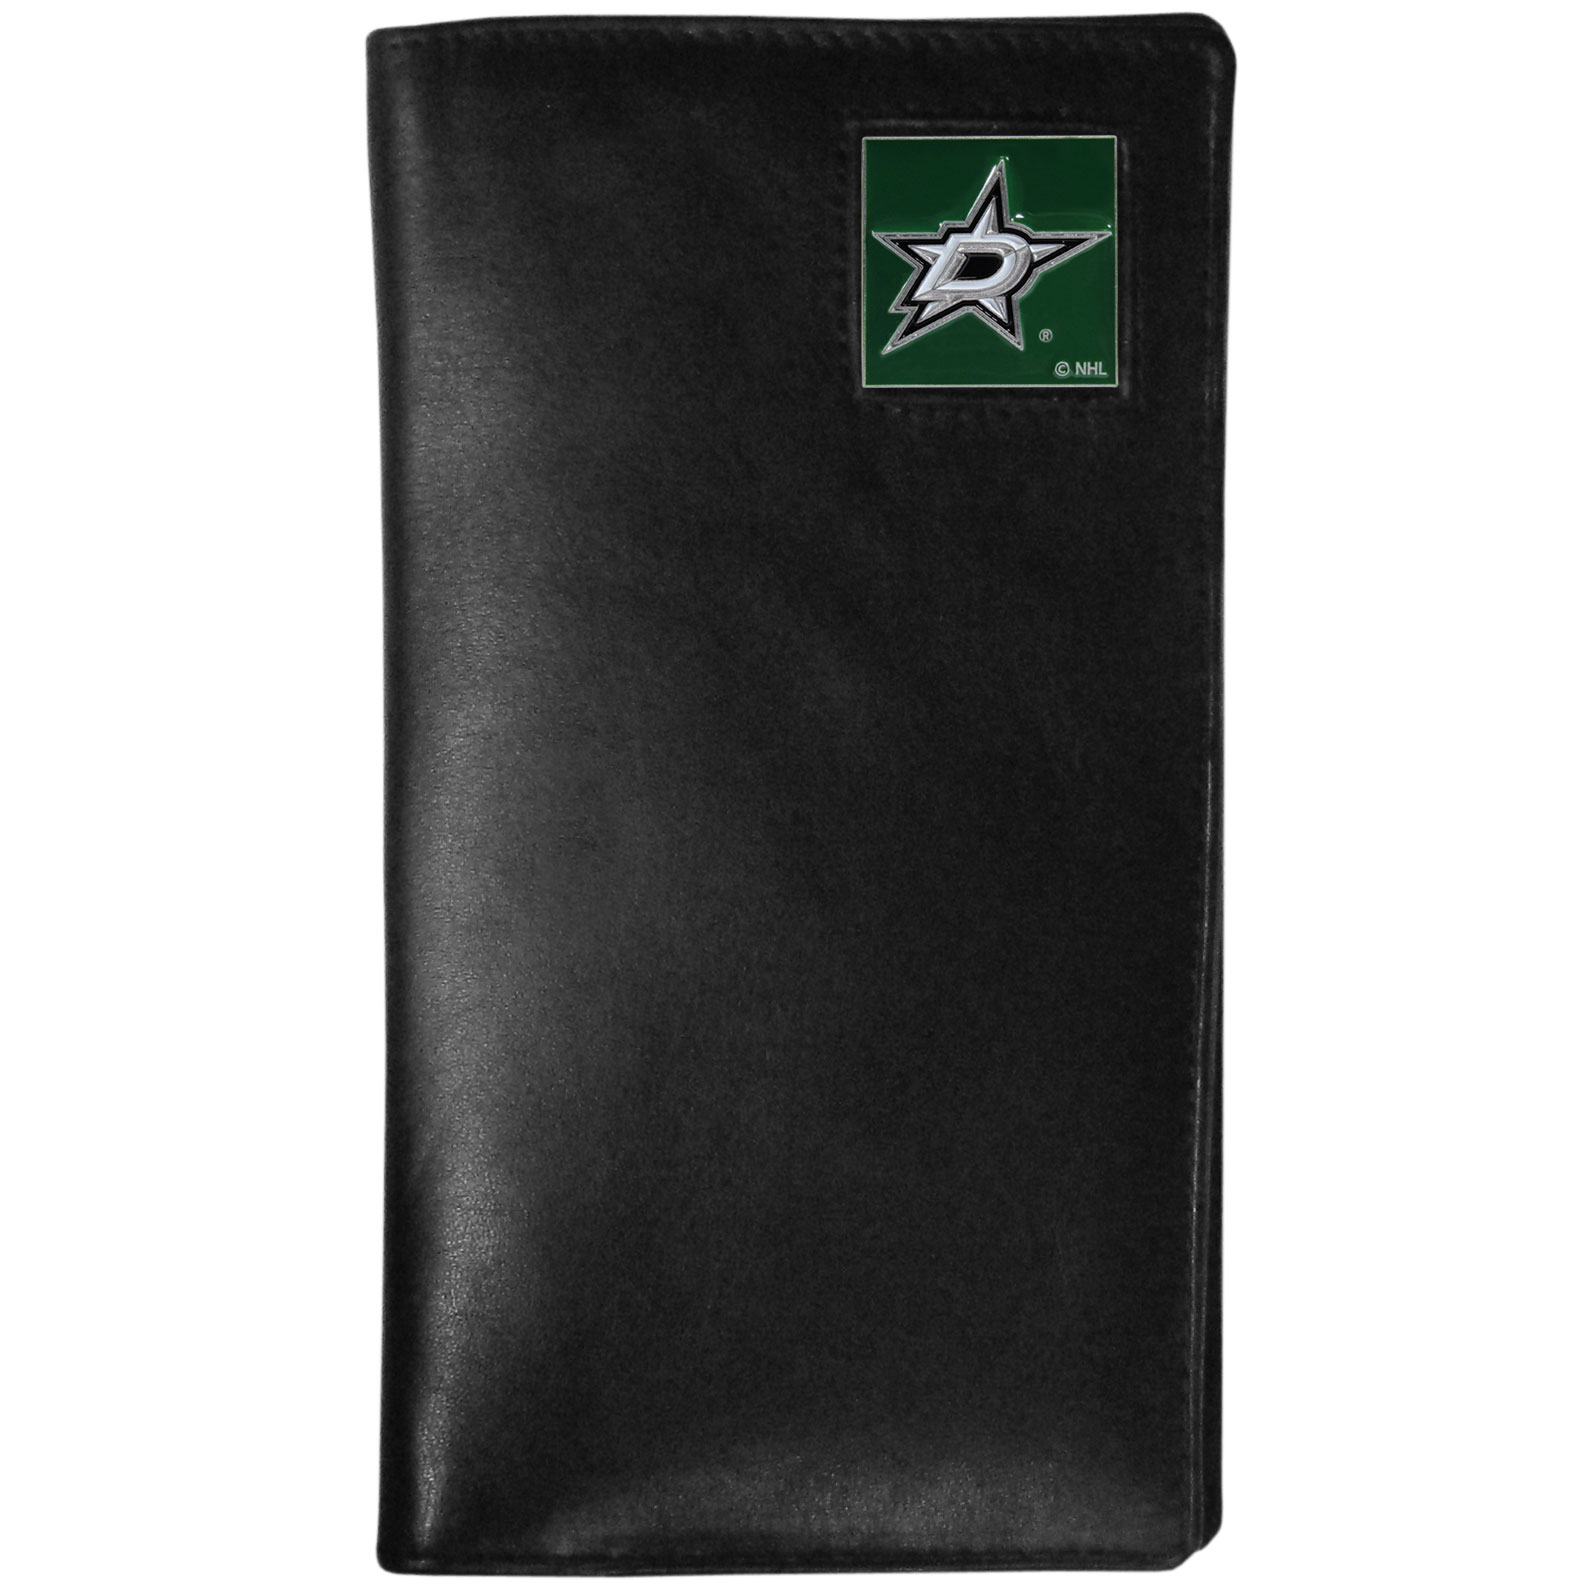 Dallas Stars Tall Leather Wallet - This officially licensed Dallas Stars tall leather wallet cover is made of high quality leather with a fully cast metal Dallas Stars emblem with enameled Dallas Stars color detail. The cover fits both side and top loaded checks and includes a large zippered pocket, windowed ID slot, numerous credit card slots and billfold pocket. Thank you for visiting CrazedOutSports